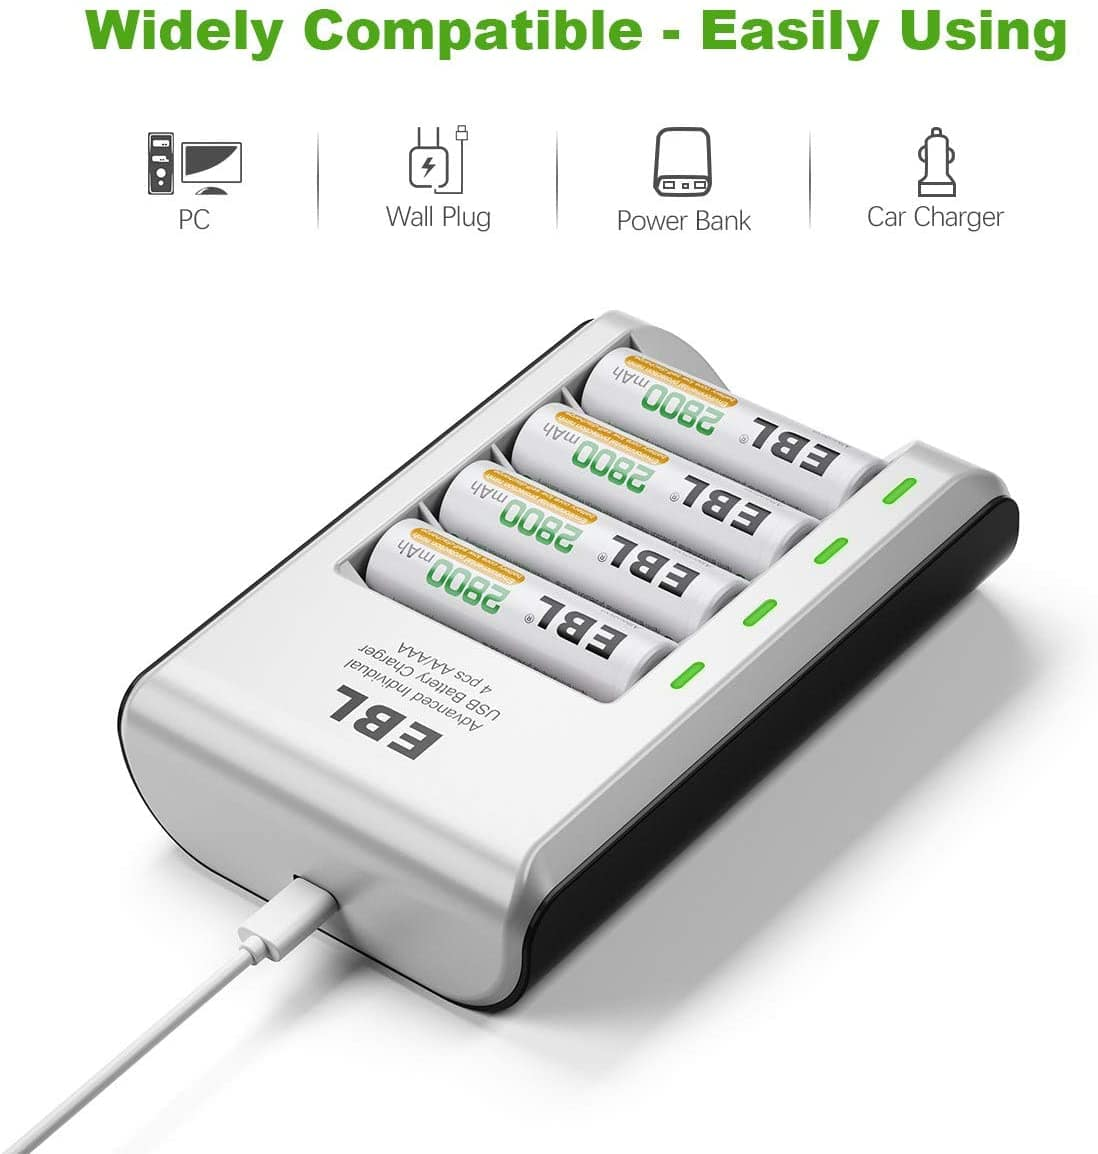 8 AAA rechargeable batteries 1,100mAh with Smart Battery Charger $13.59 on Amazon from EBL